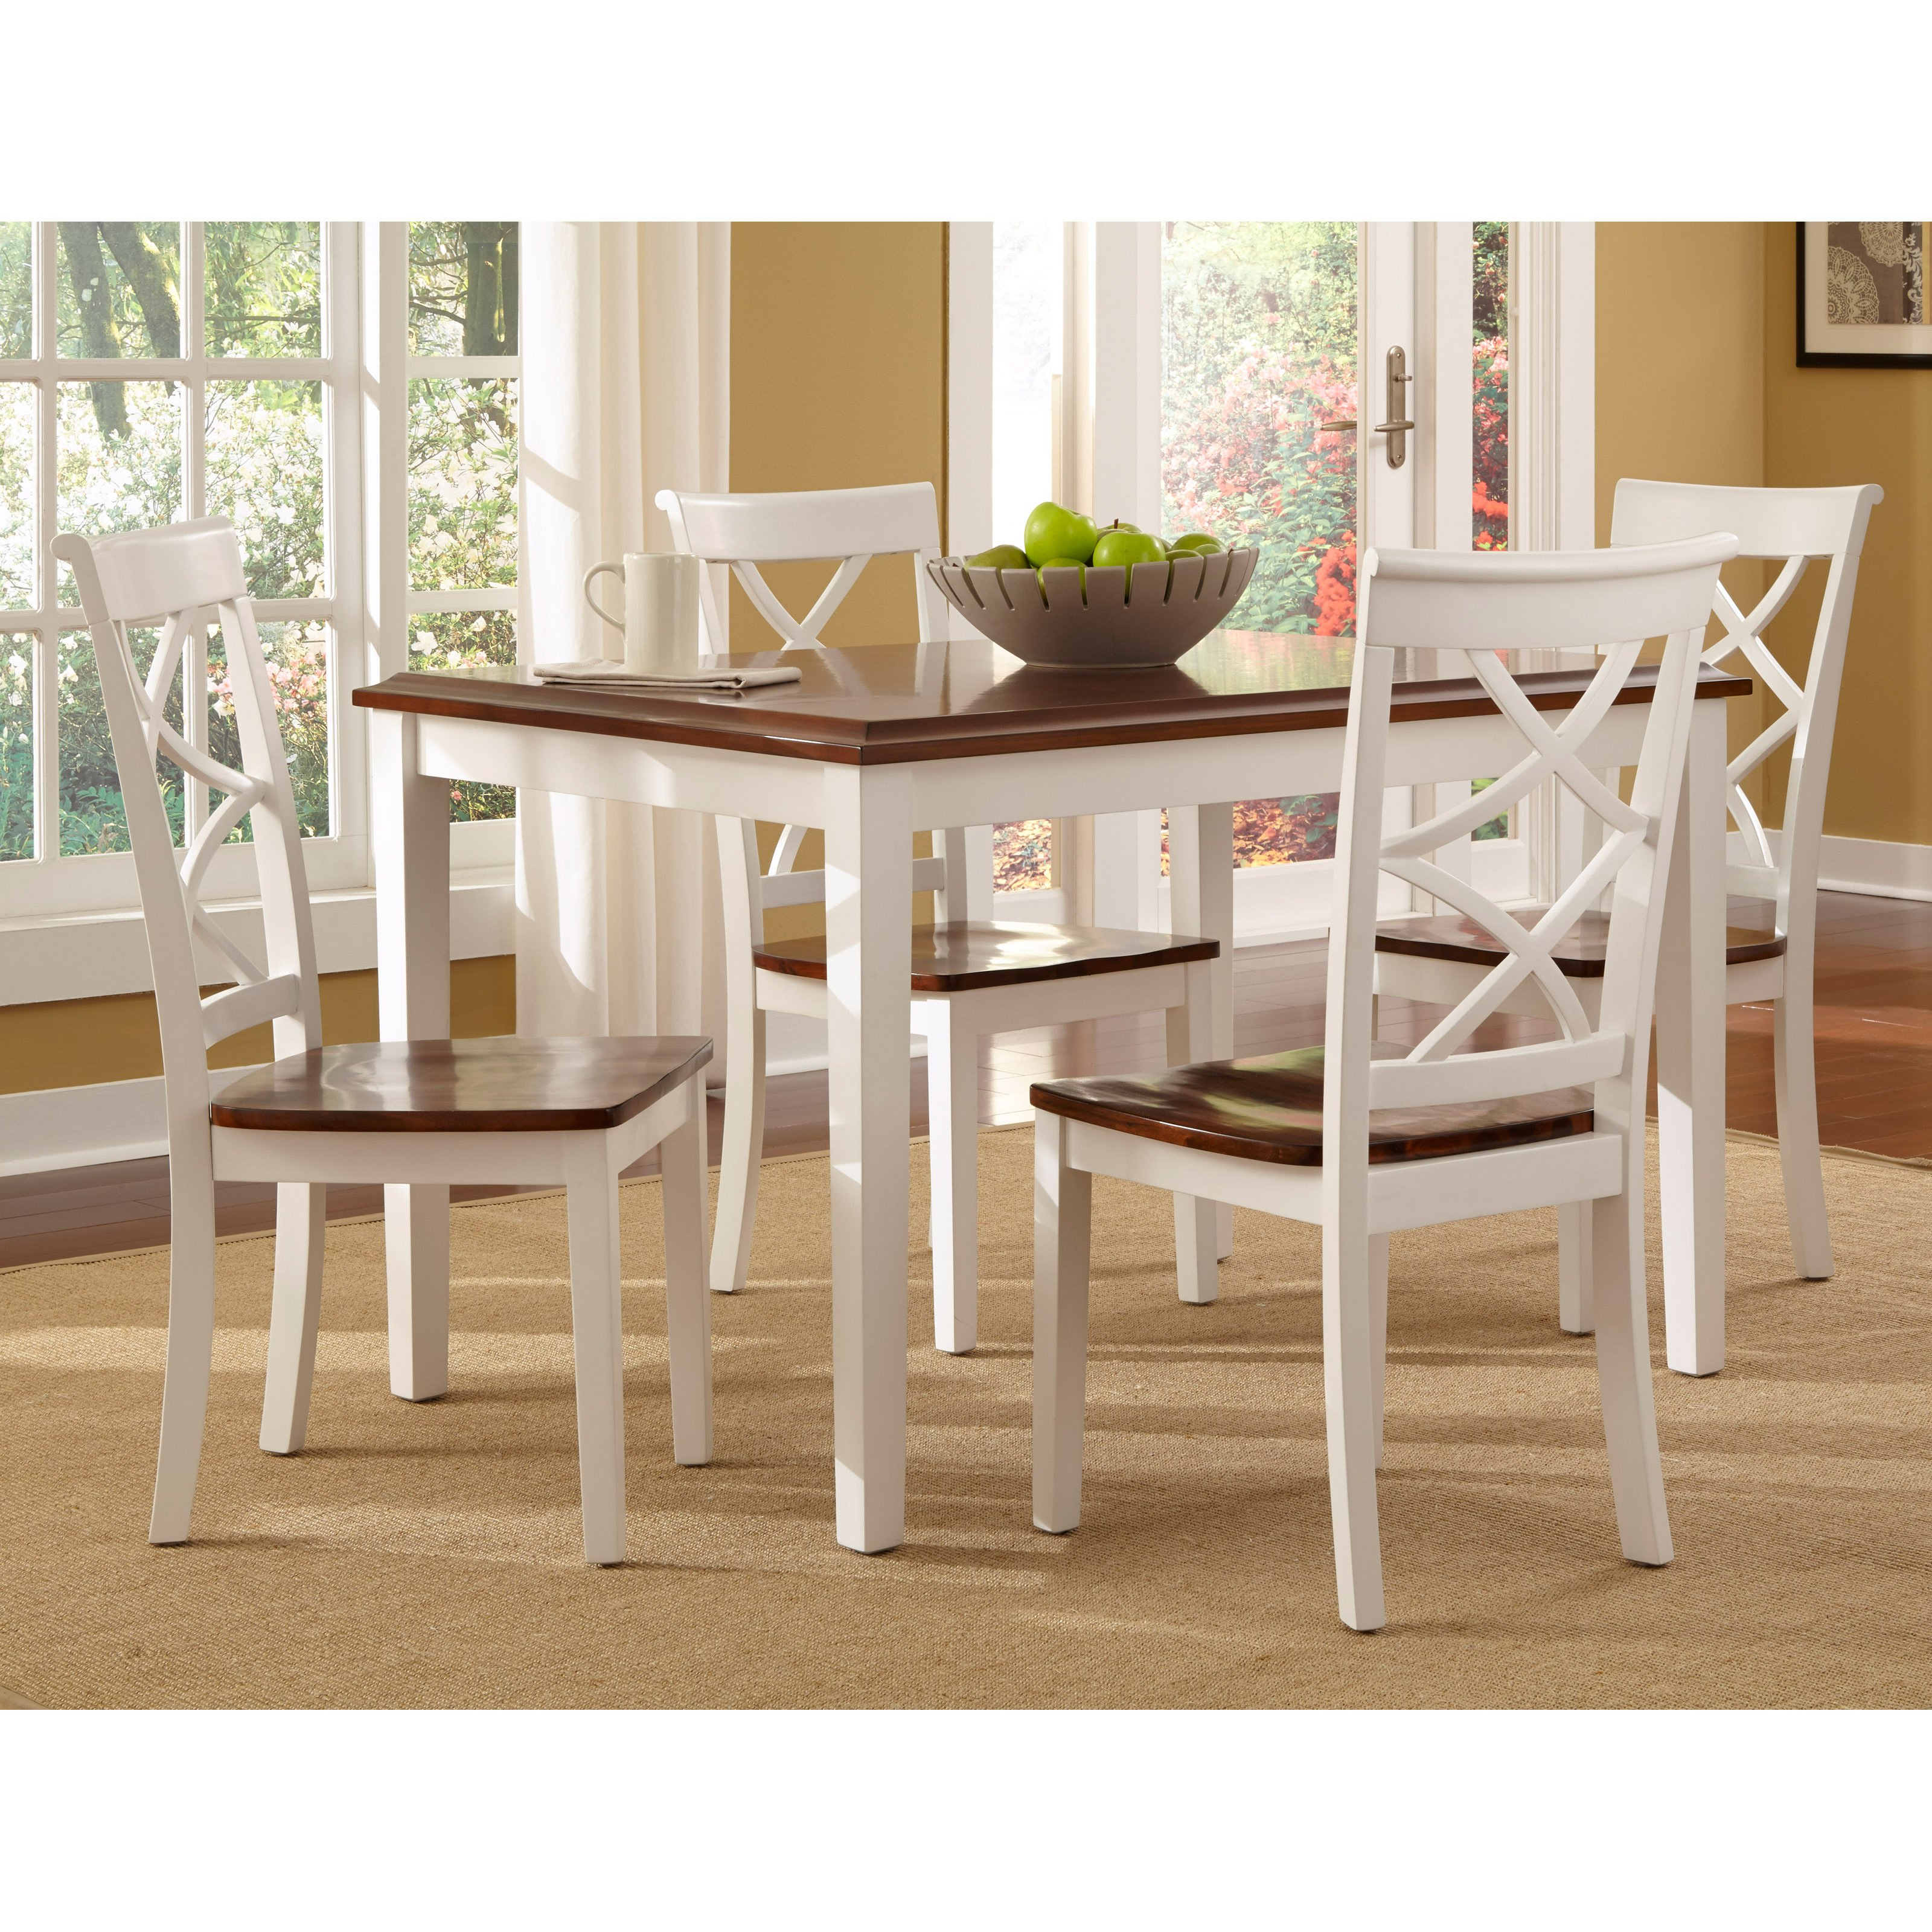 Metropolitan 3 Piece Dining Set, Multiple Finishes - Walmart with Widely used Rossiter 3 Piece Dining Sets